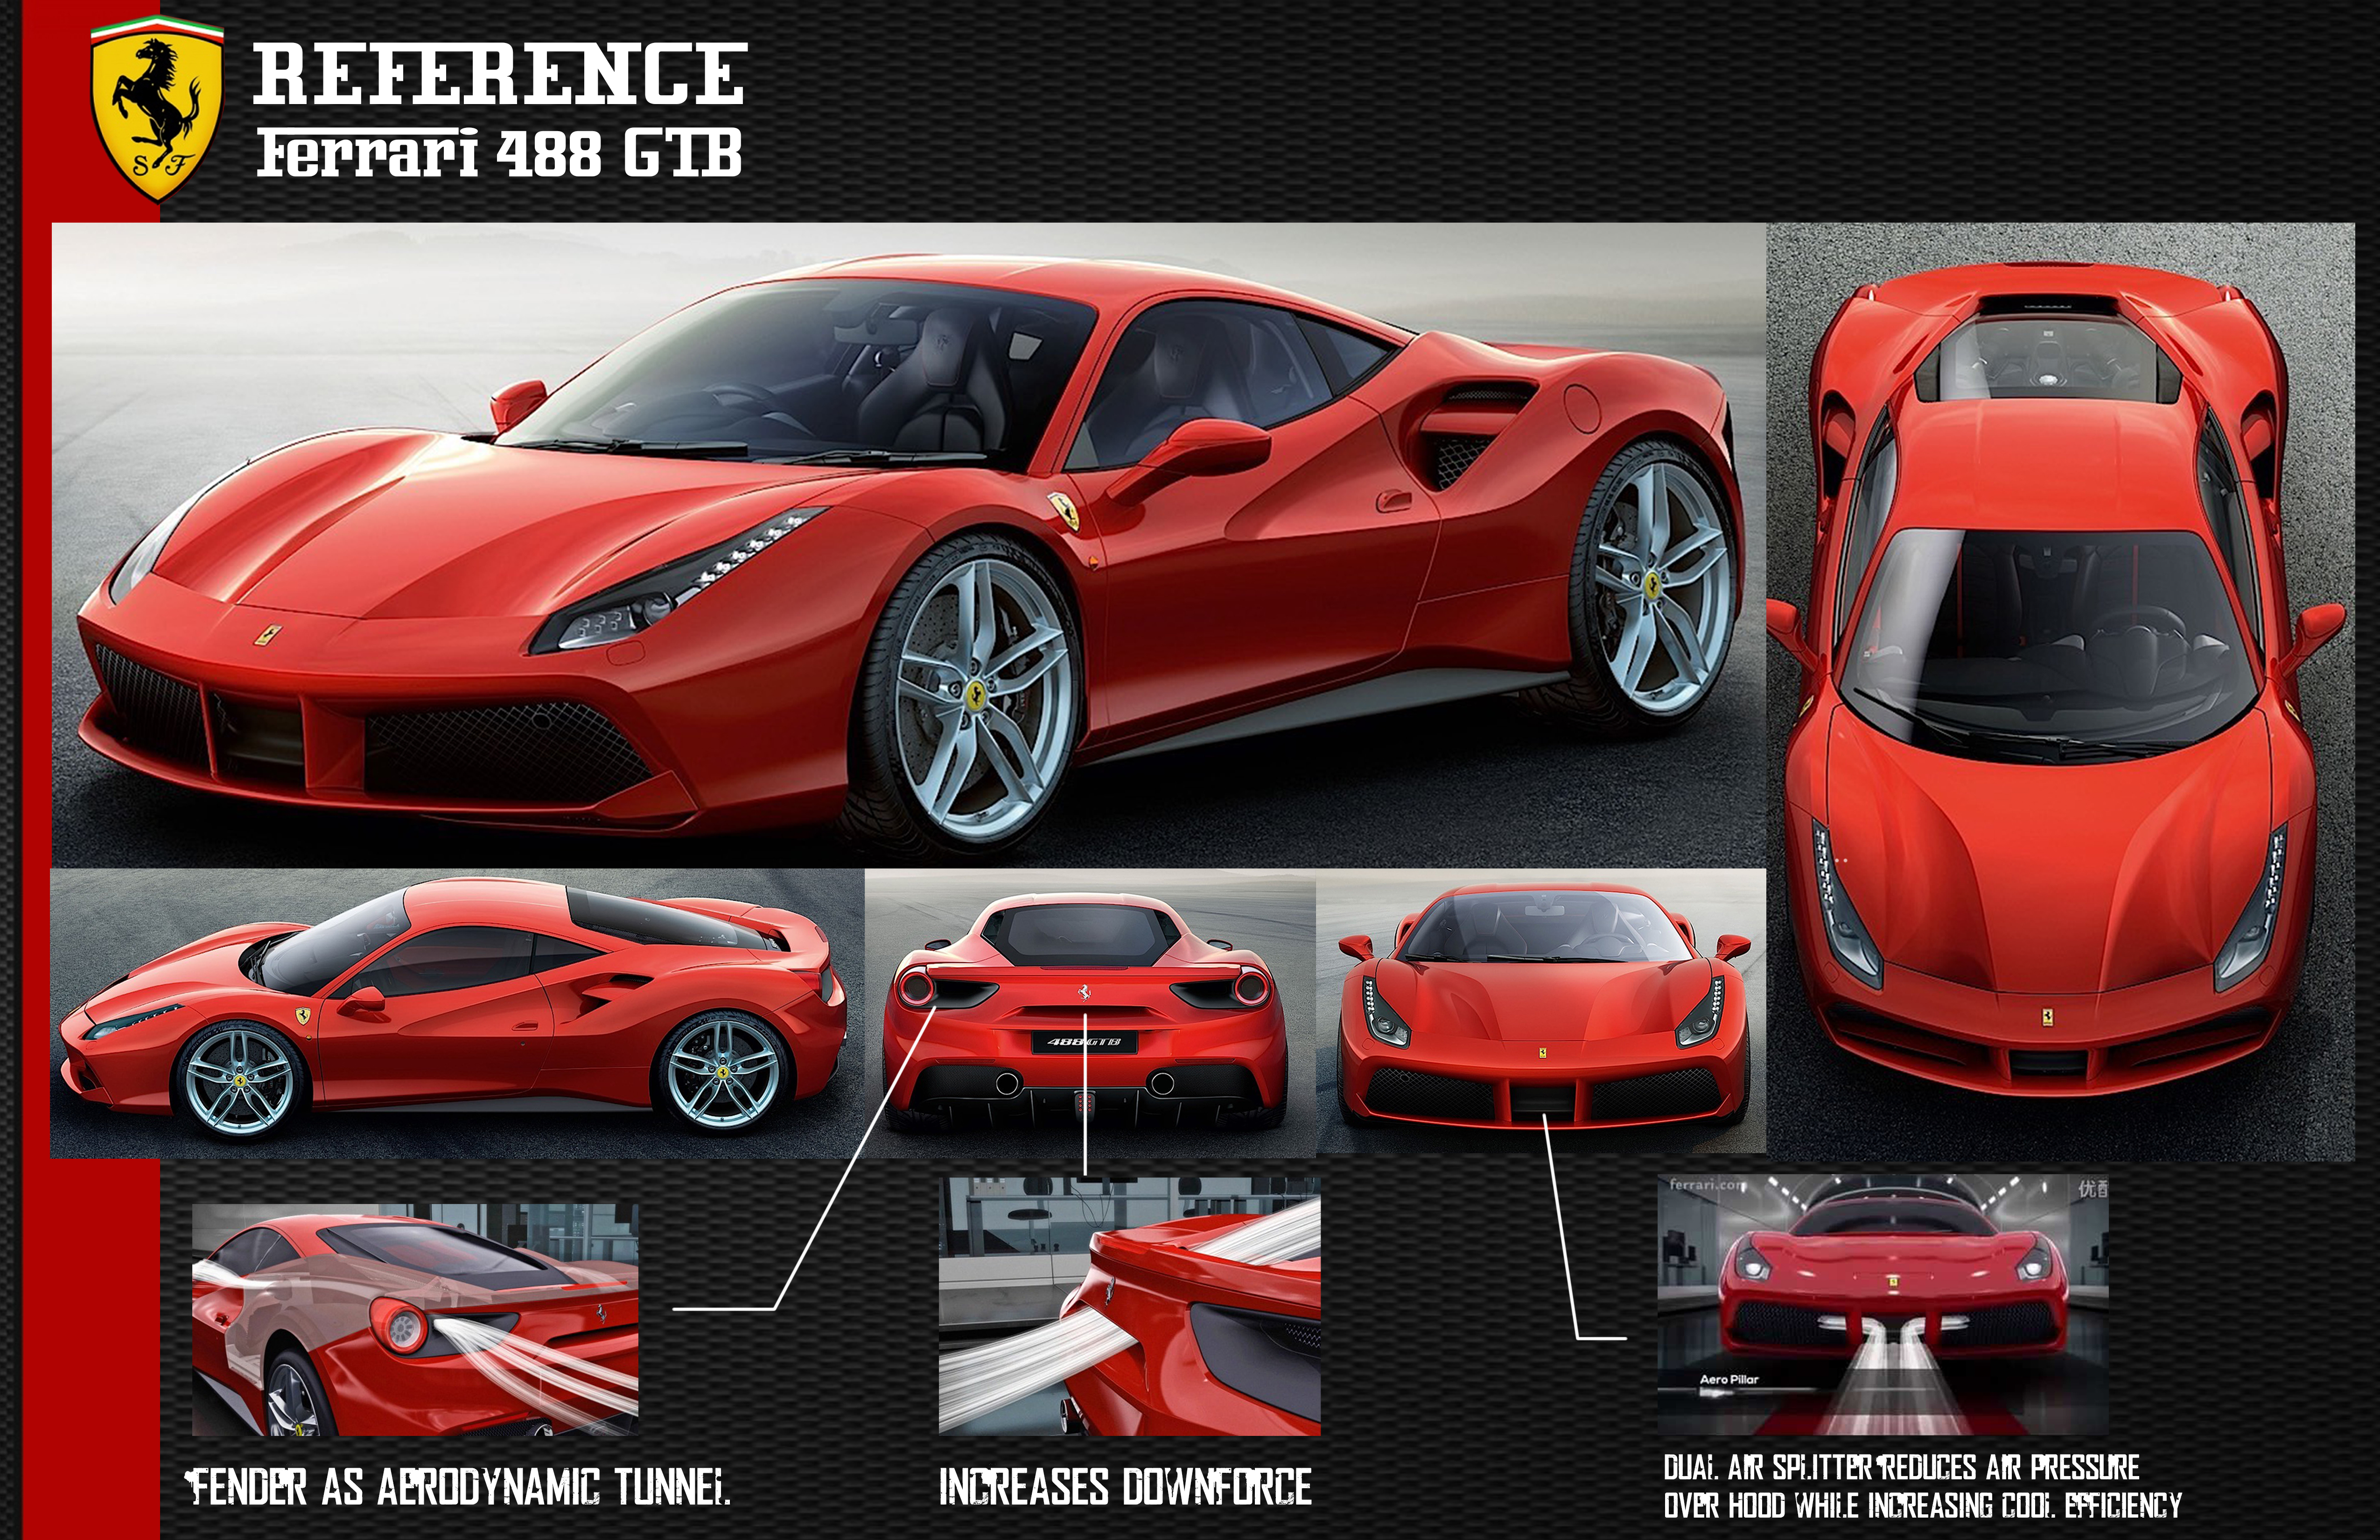 SuperCar-Reference Vehicle